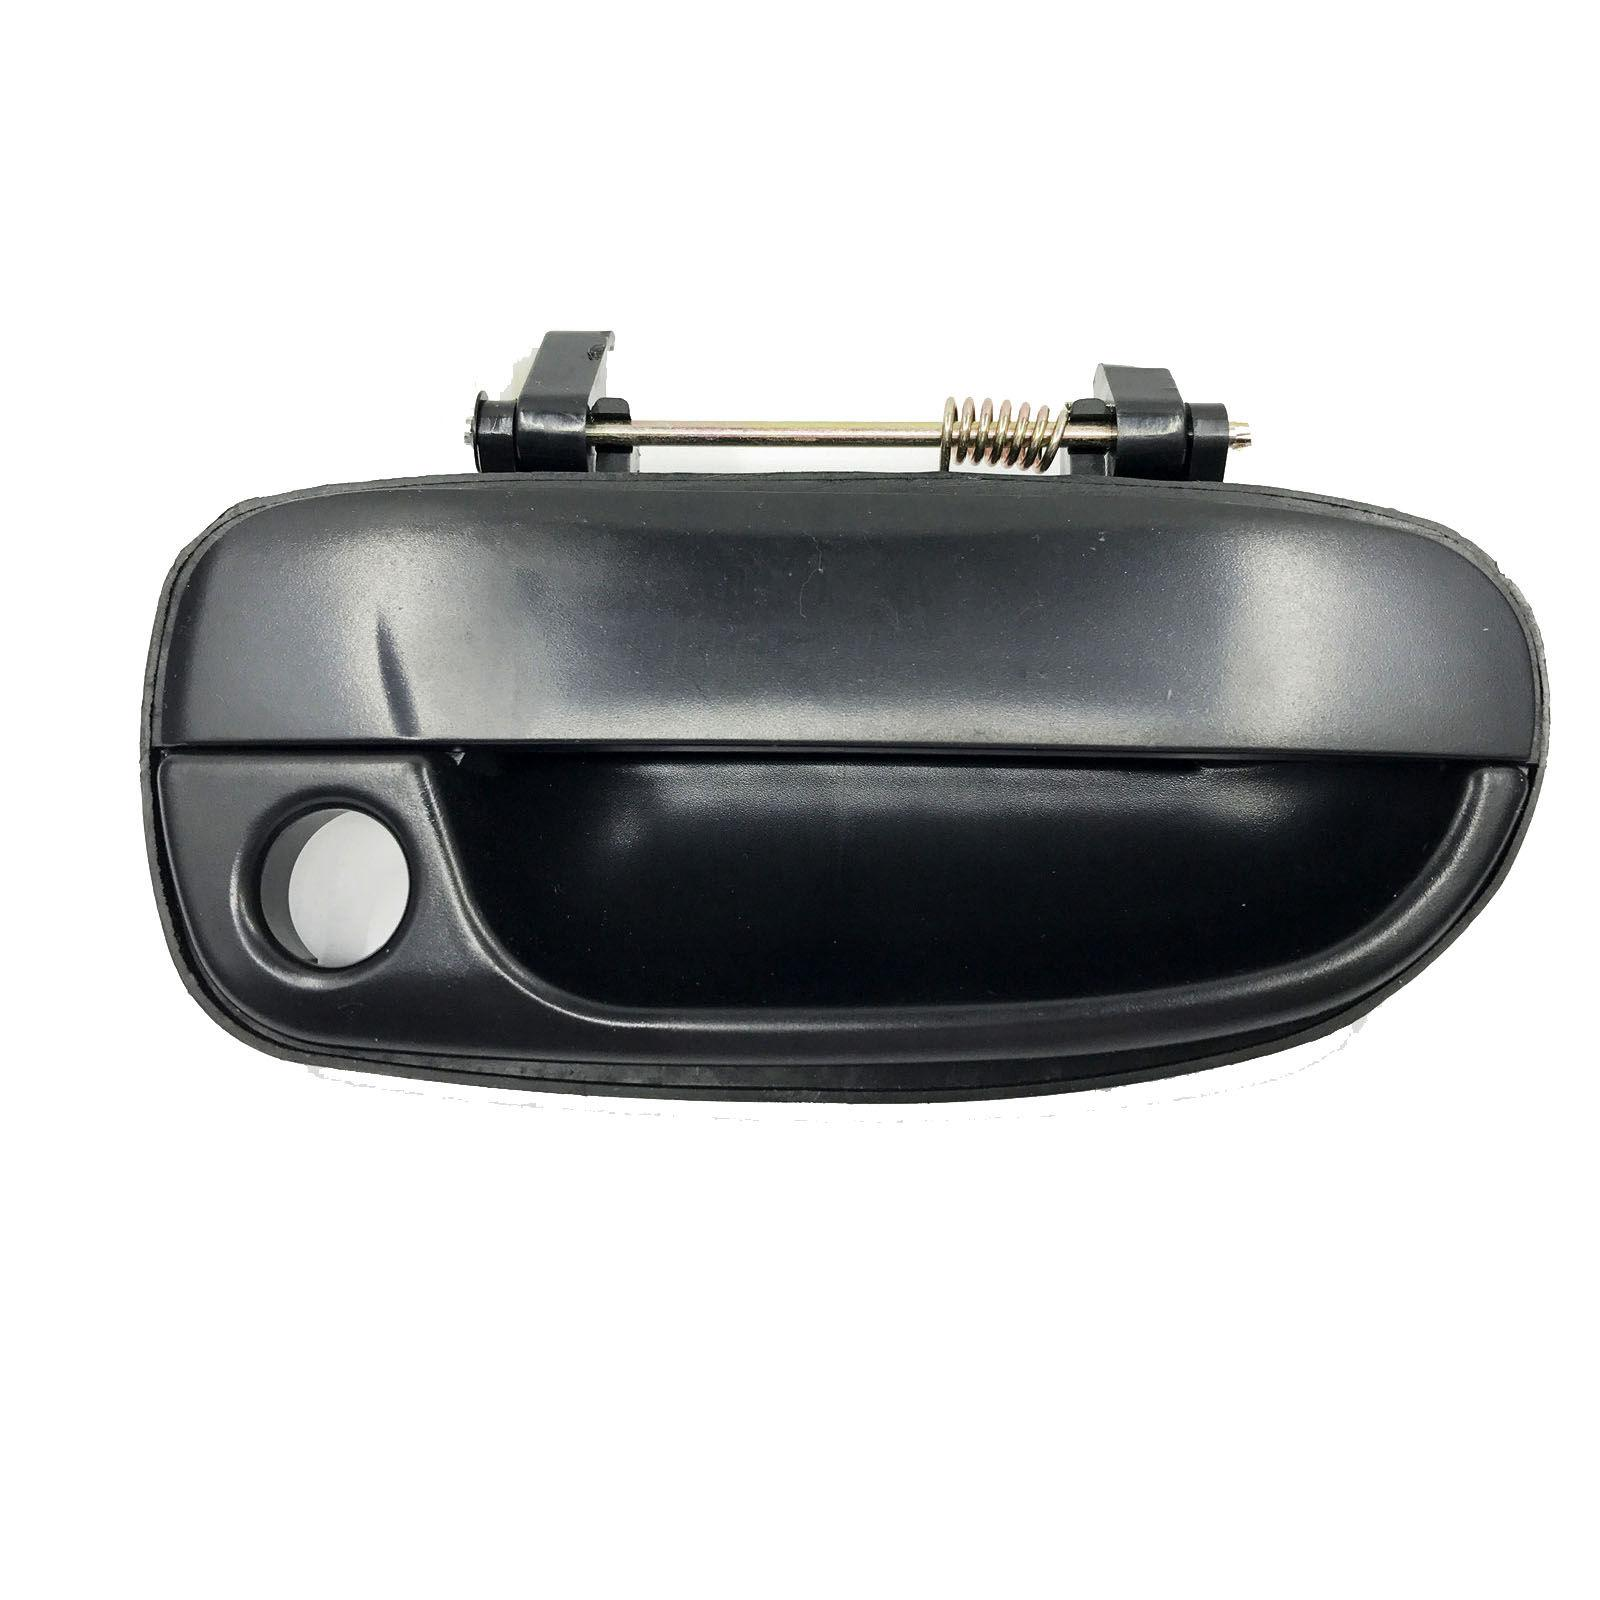 Marvelous 2003 Hyundai Accent Door Handle Problems Images Plan 3d House